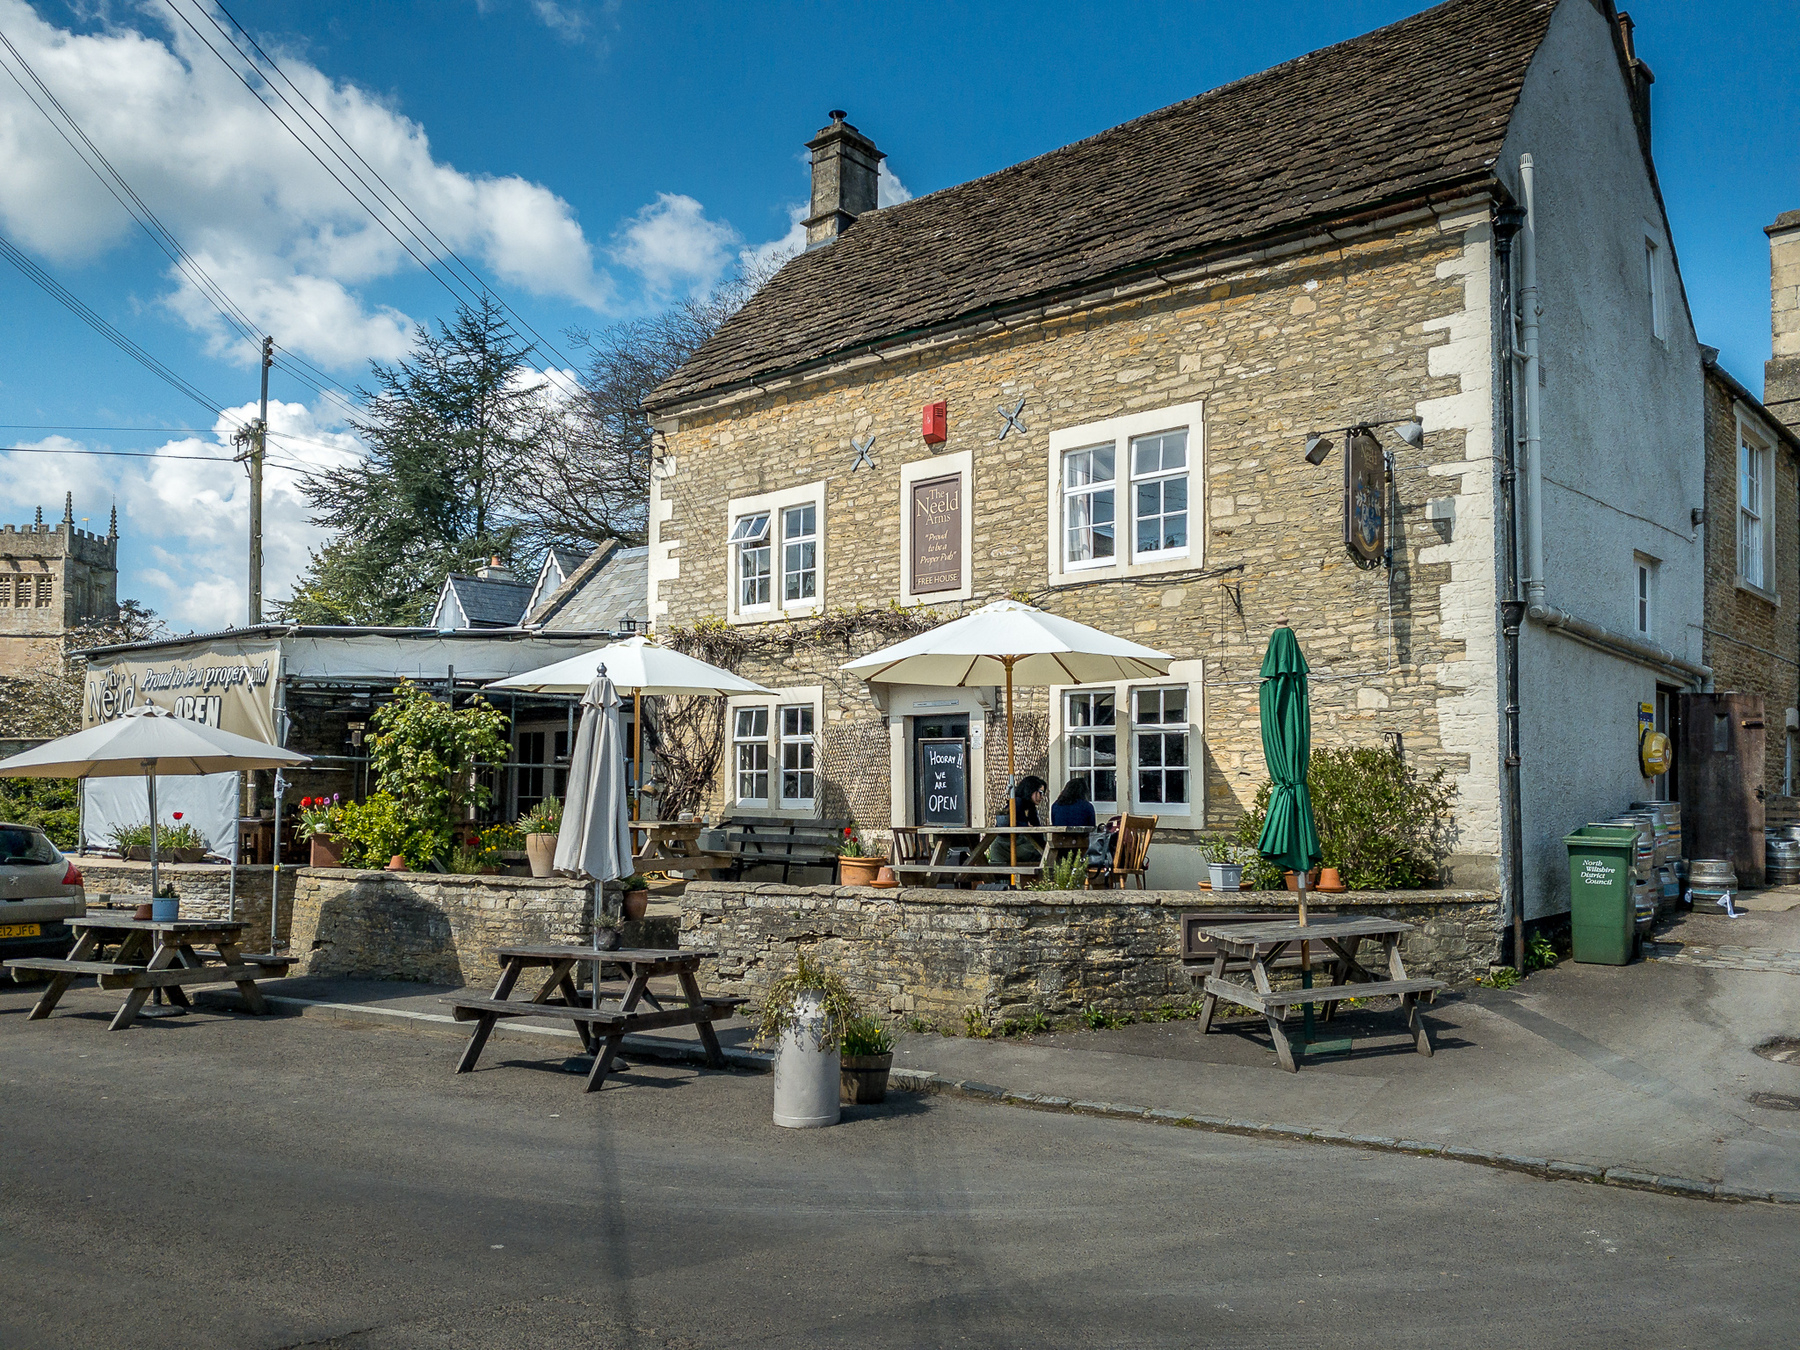 phot of the grittleton arms